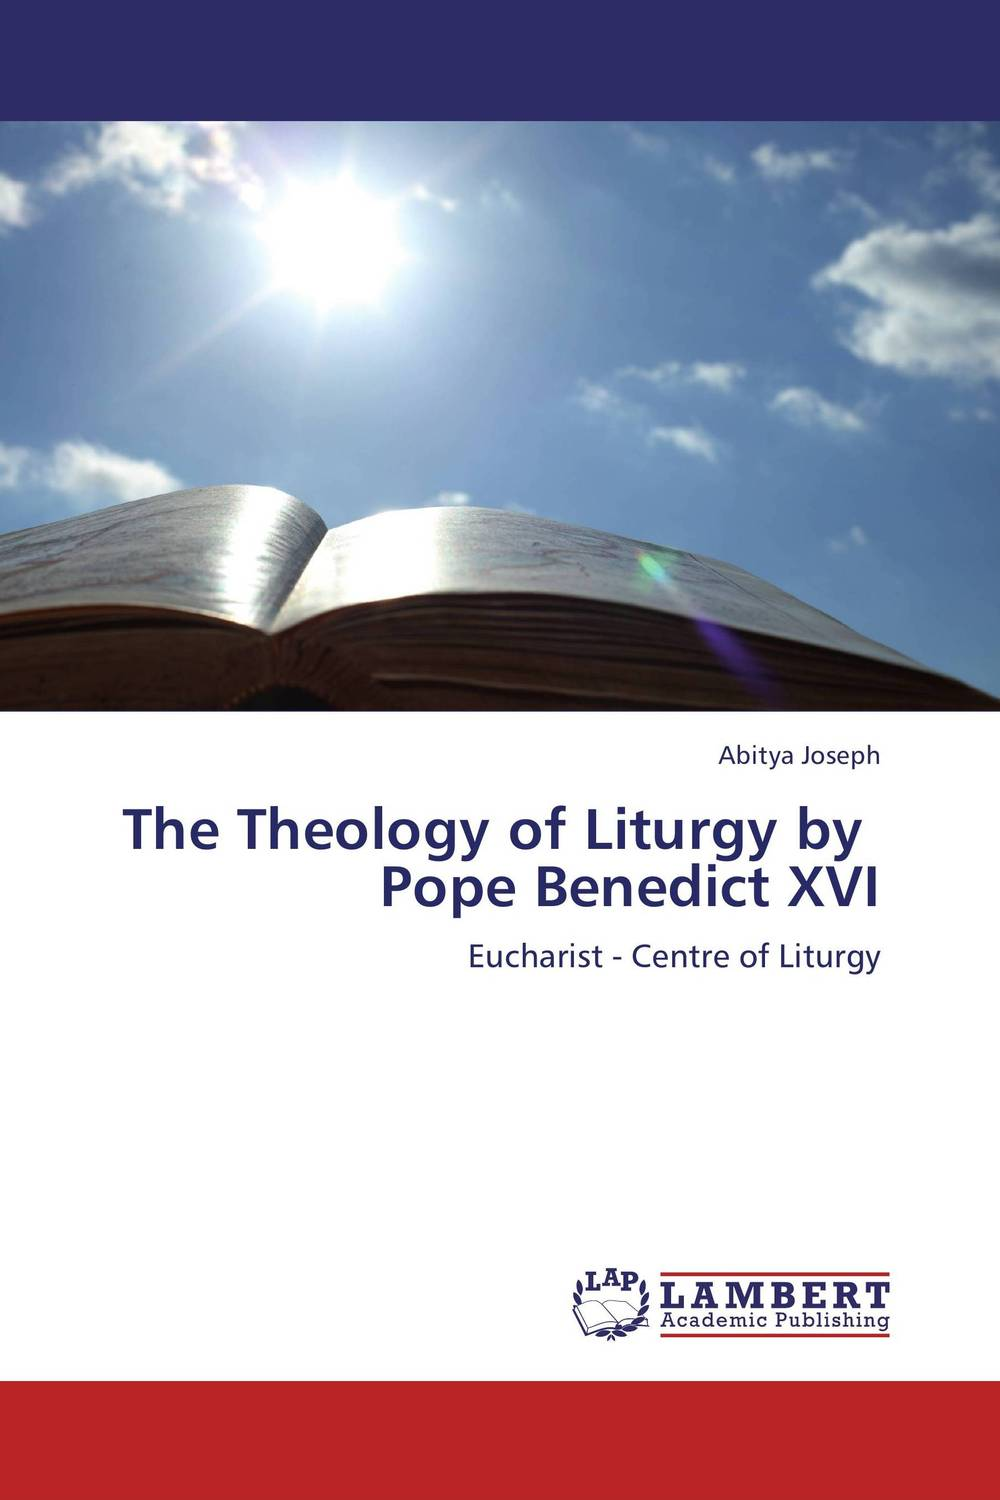 The Theology of Liturgy by Pope Benedict XVI sola scriptura benedict xvi s theology of the word of god